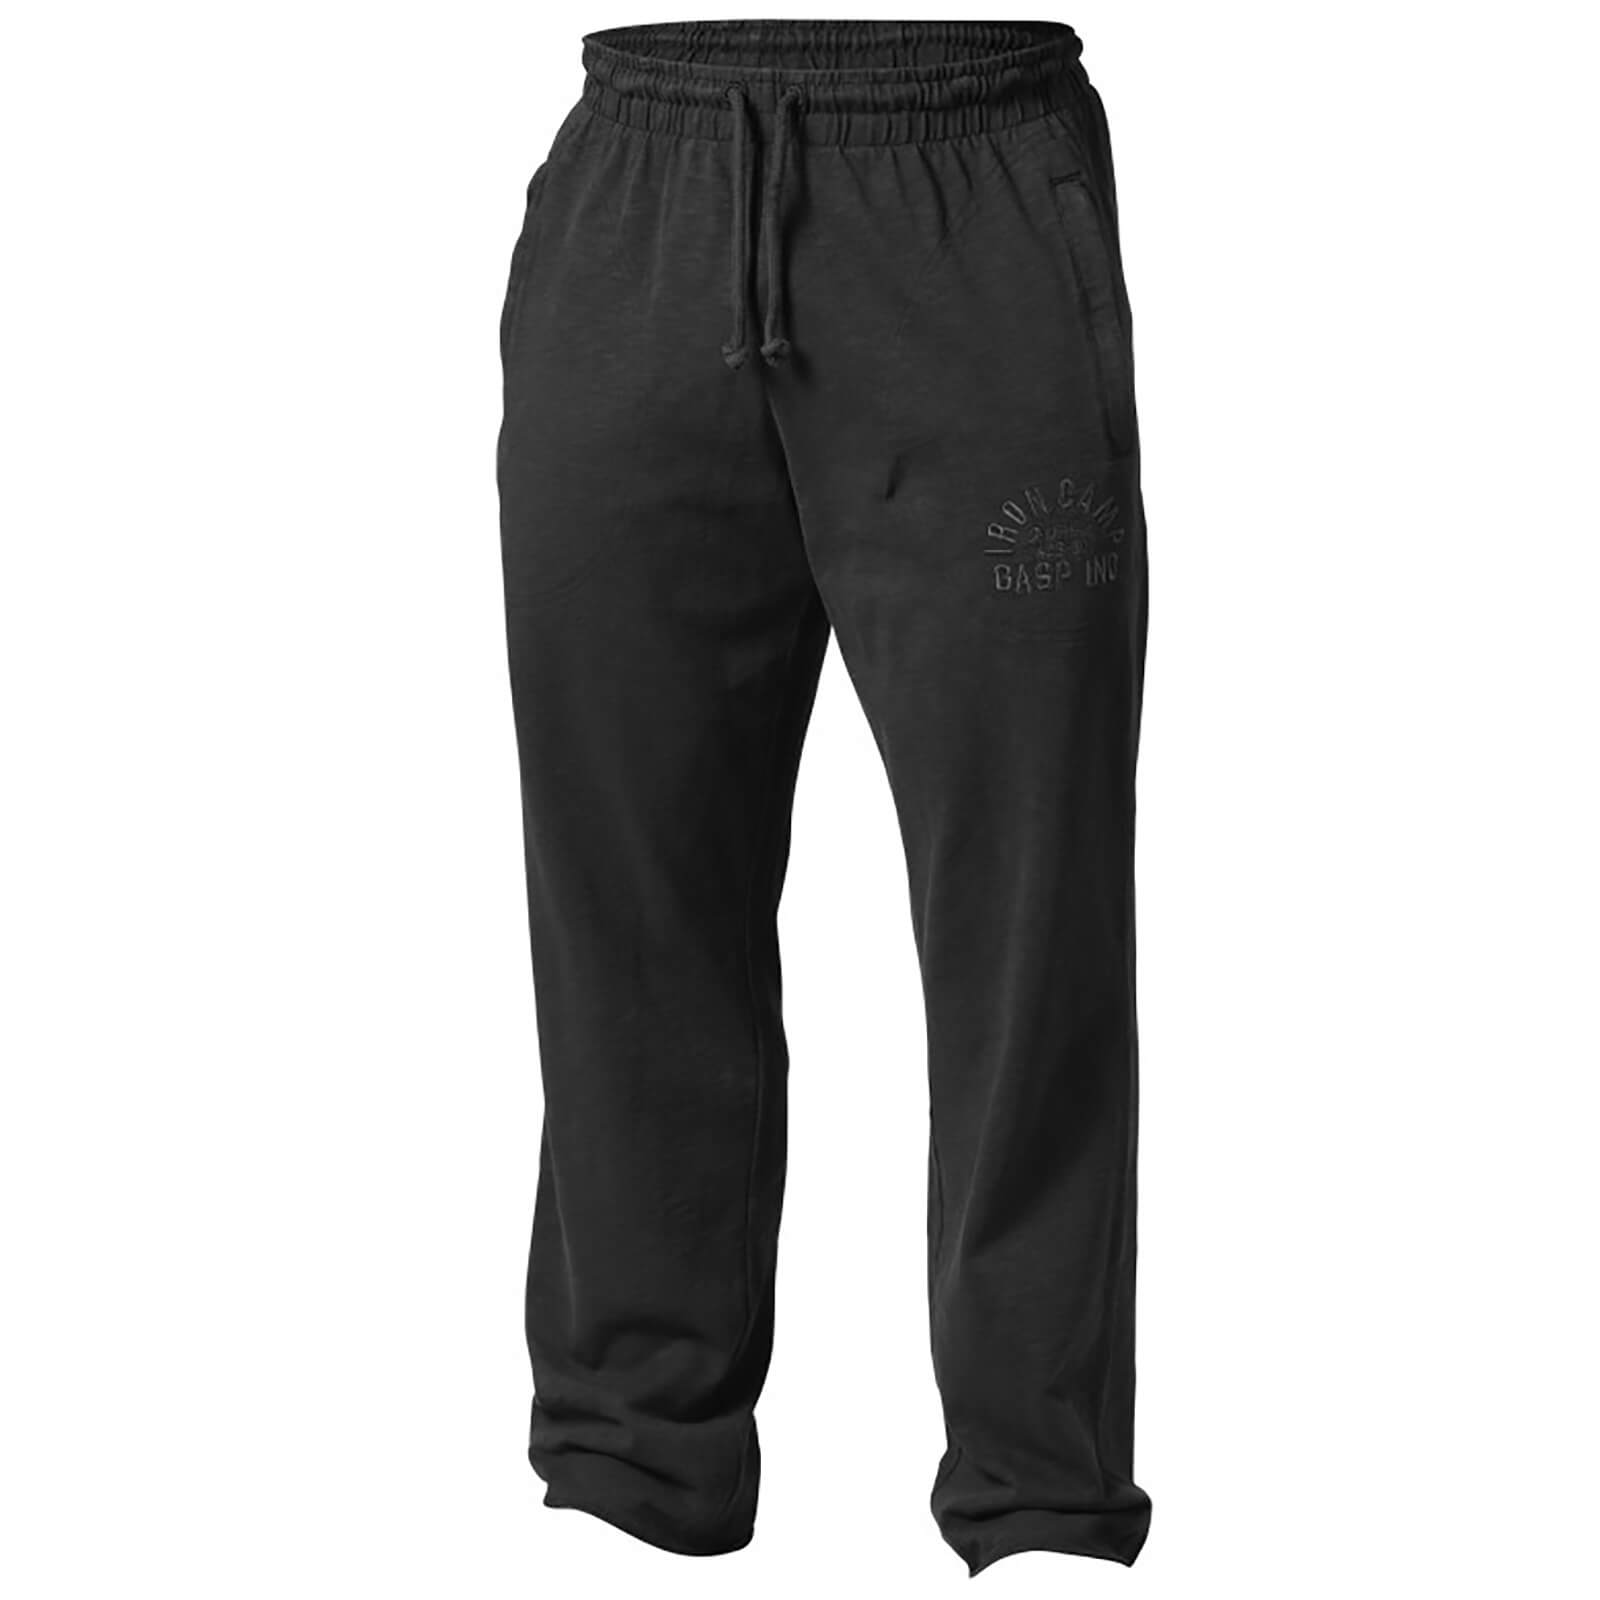 GASP Throwback Street Pants - Wash Black